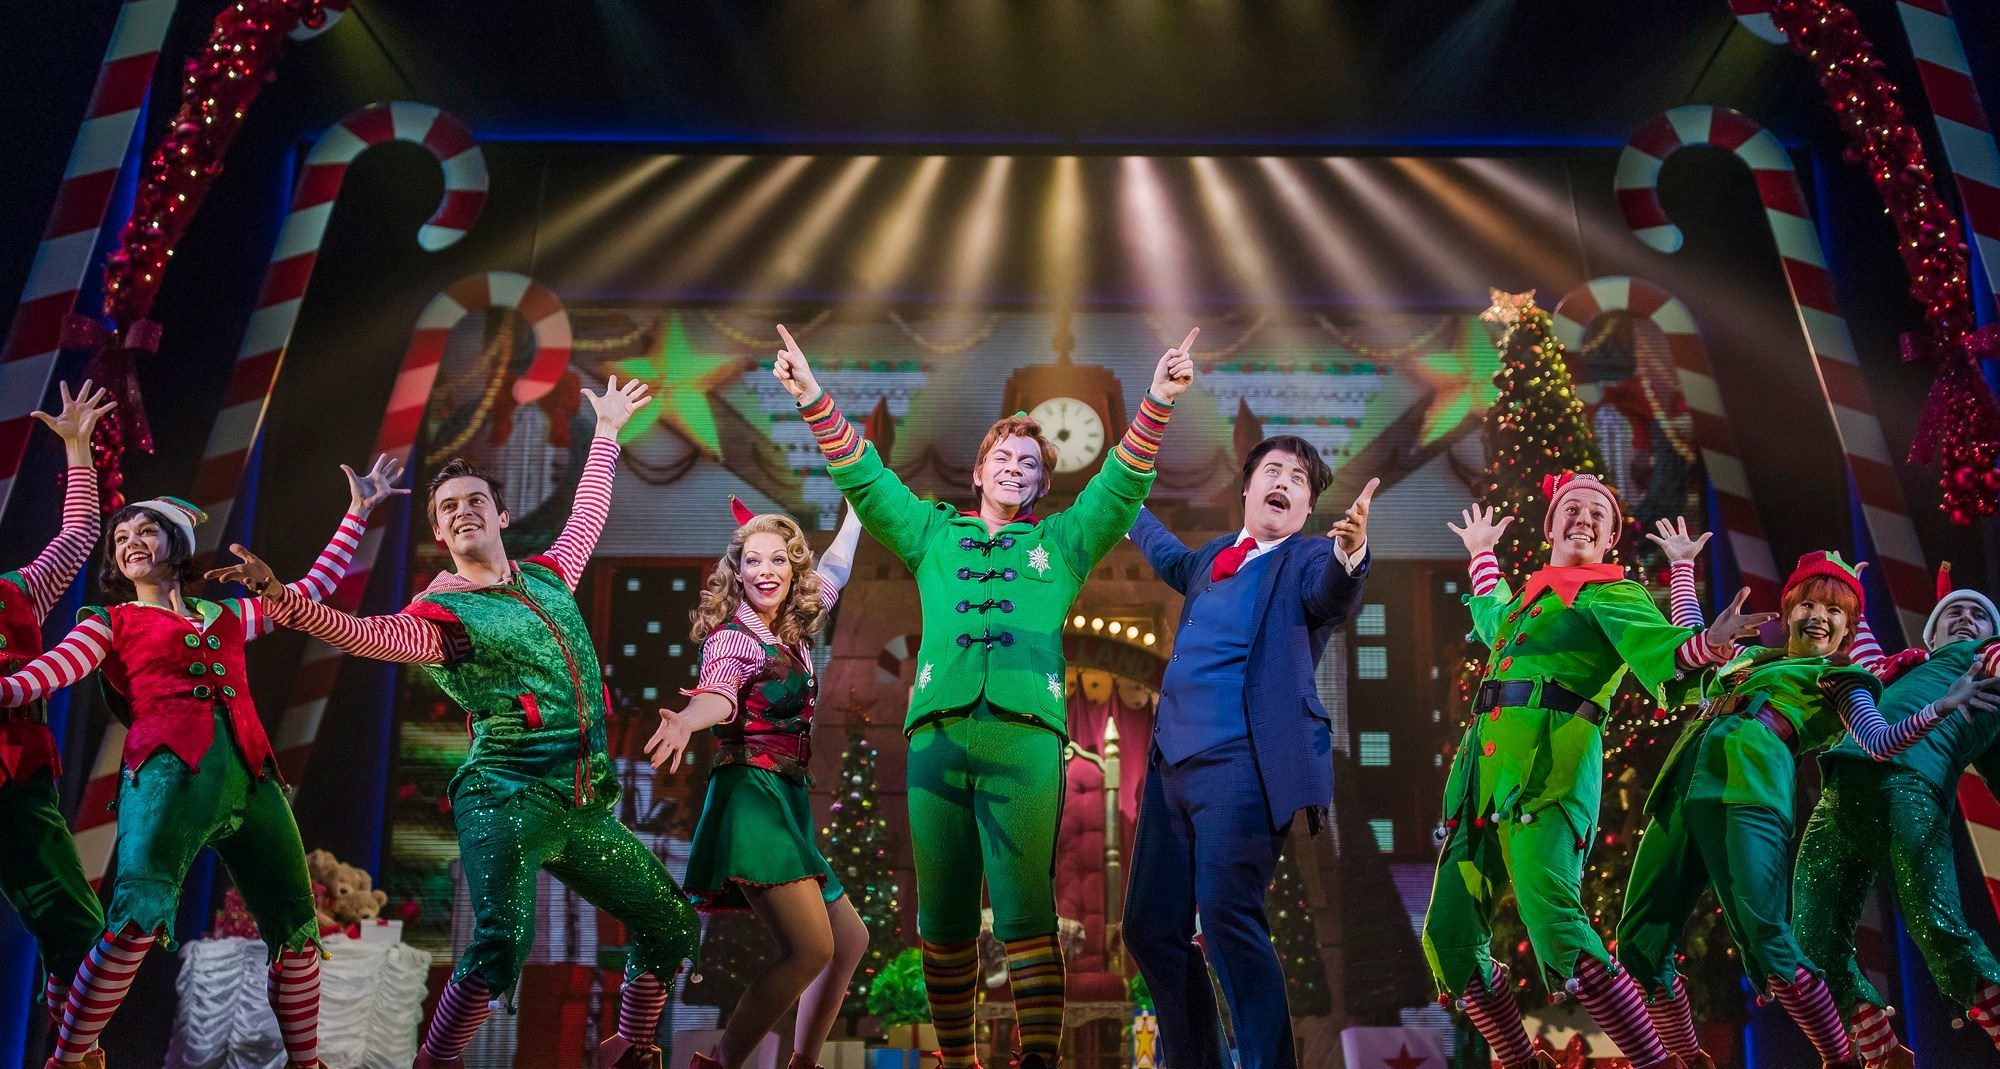 The Lowry Theatre's 2017/8 production of Christmas show Elf